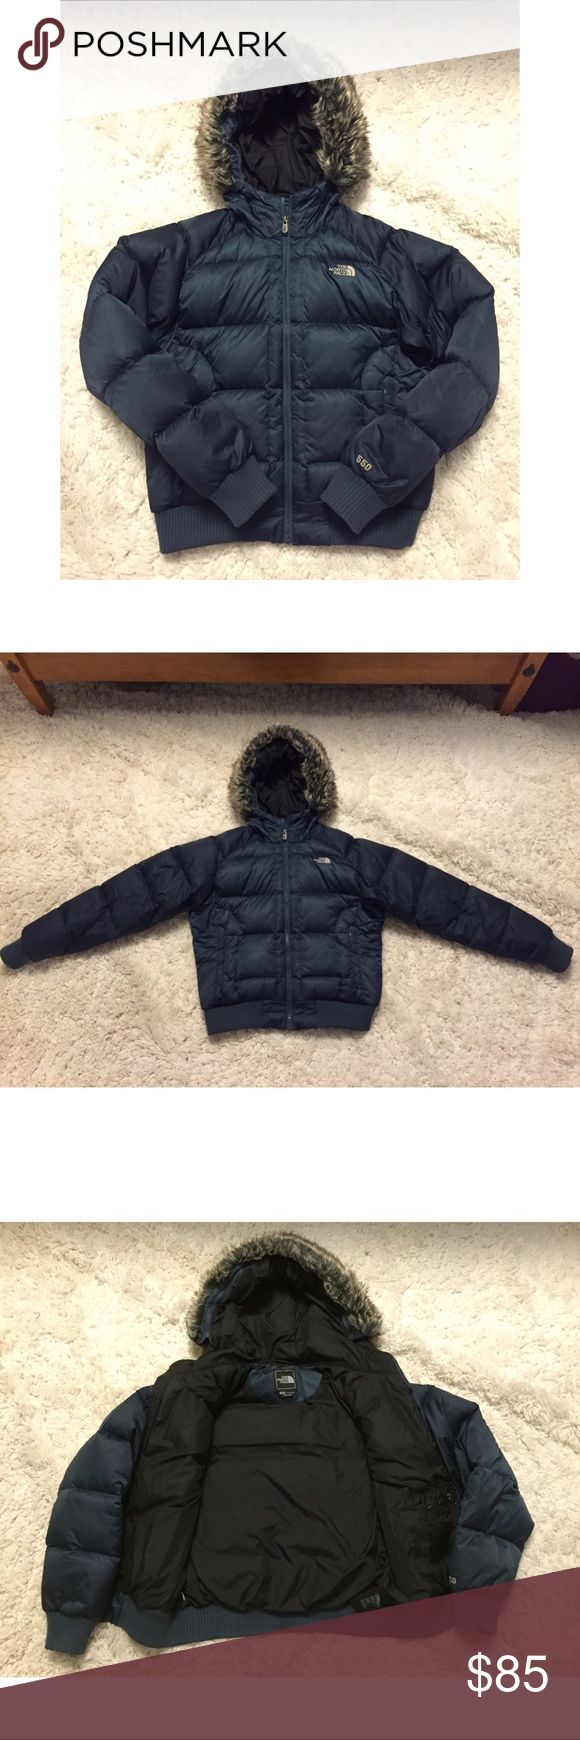 Women's North Face Down Winter Jacket Women's North Face puffy down winter jacket in excellent gently used condition. Gorgeous blue color. Only worn for 1 winter. The style of the jacket is fitted. The hood has a detachable faux fur lining. No stains, rips, or tears. North Face Jackets & Coats